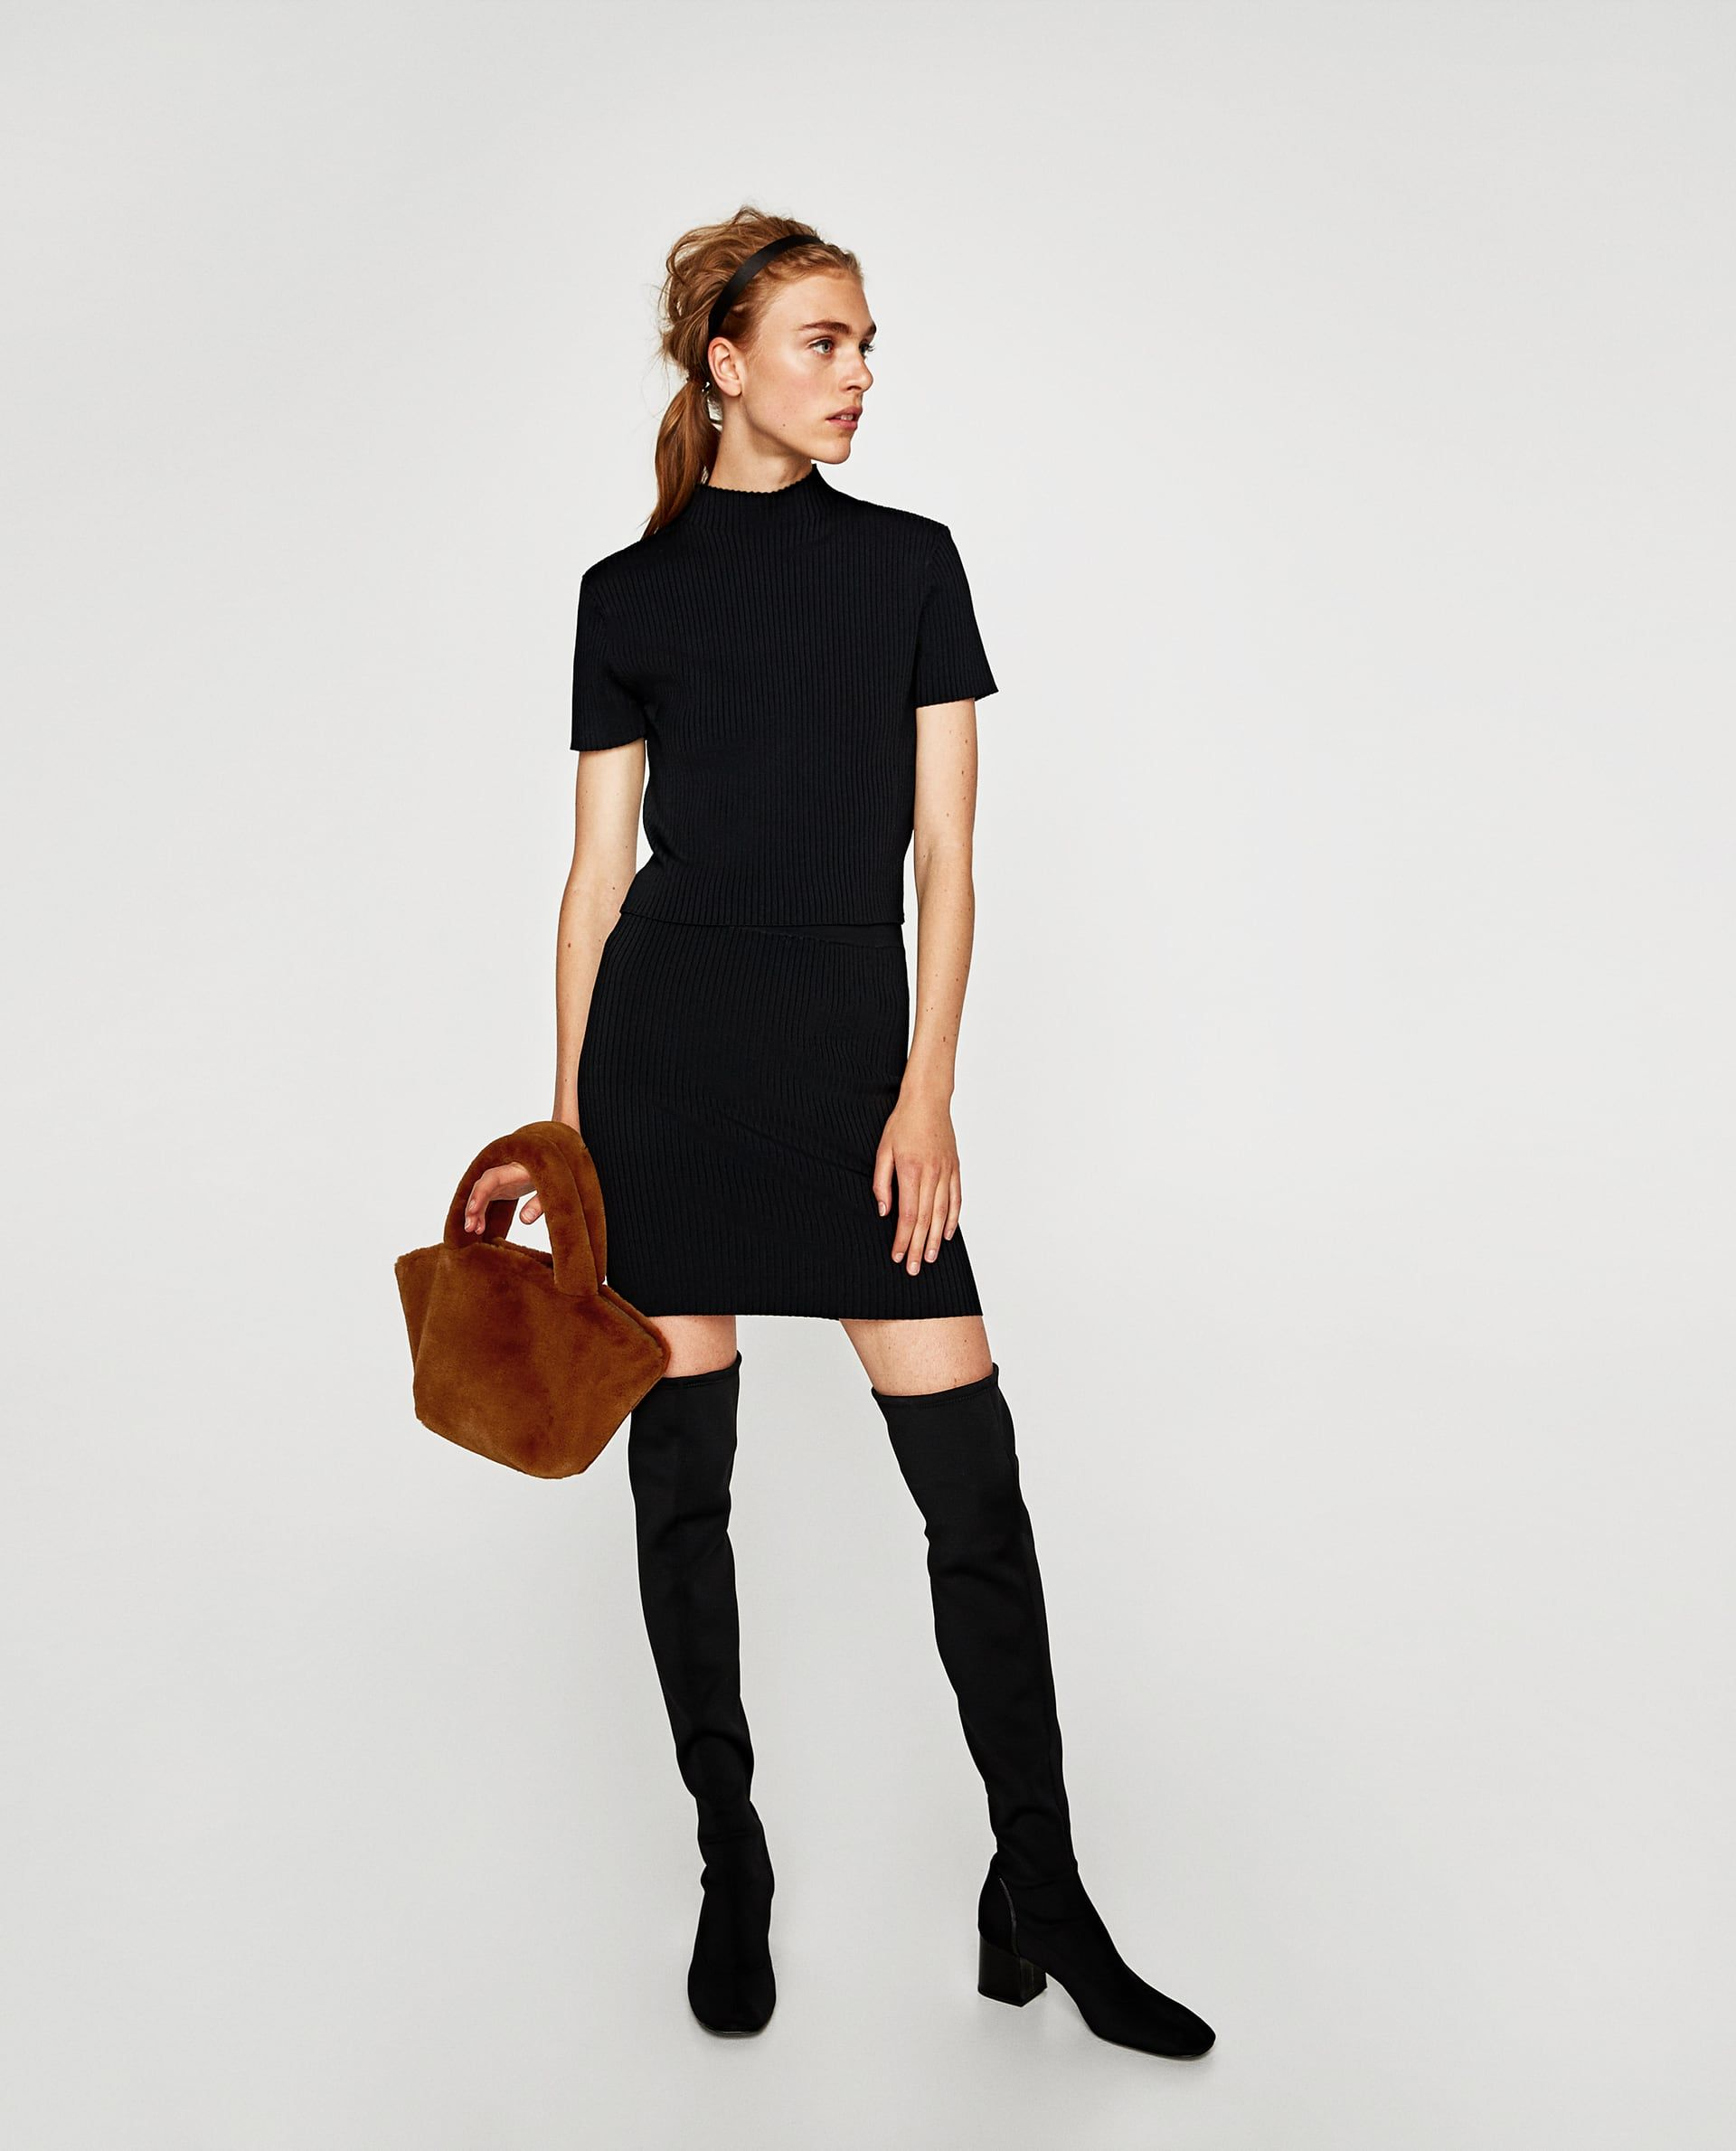 a673d4220 Image 1 of RIBBED TOP WITH HIGH COLLAR from Zara